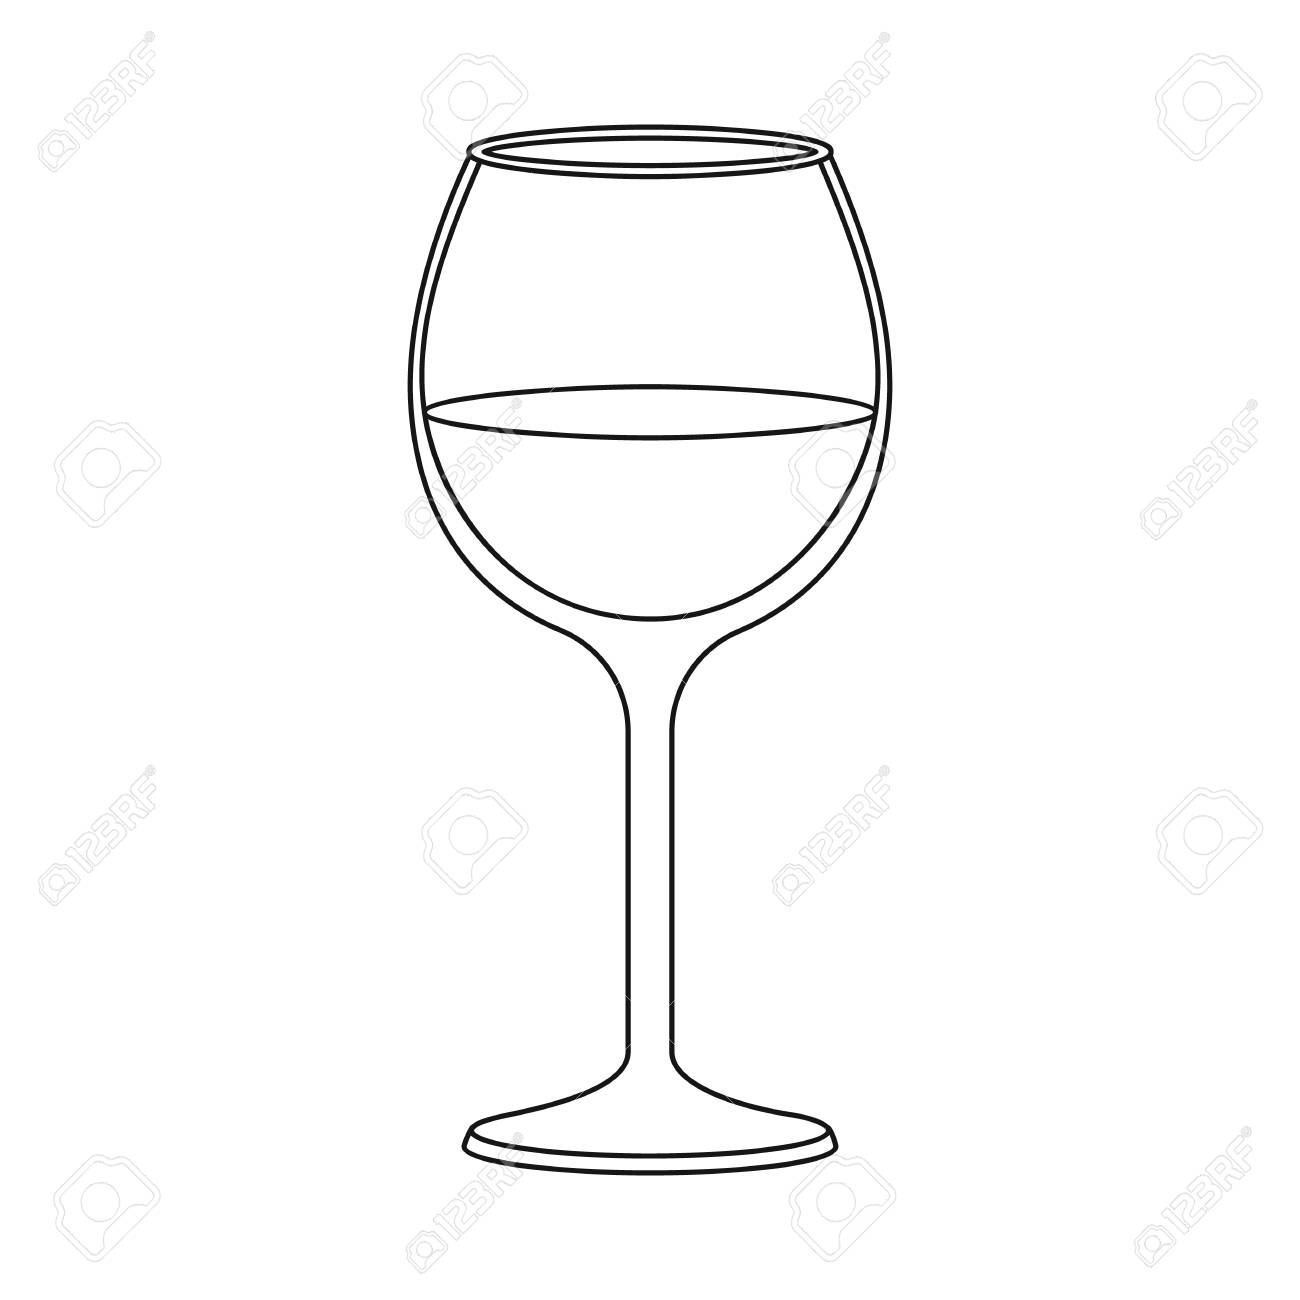 Isolated object of wine and red symbol. Collection of wine and wineglass stock vector illustration. - 120588819